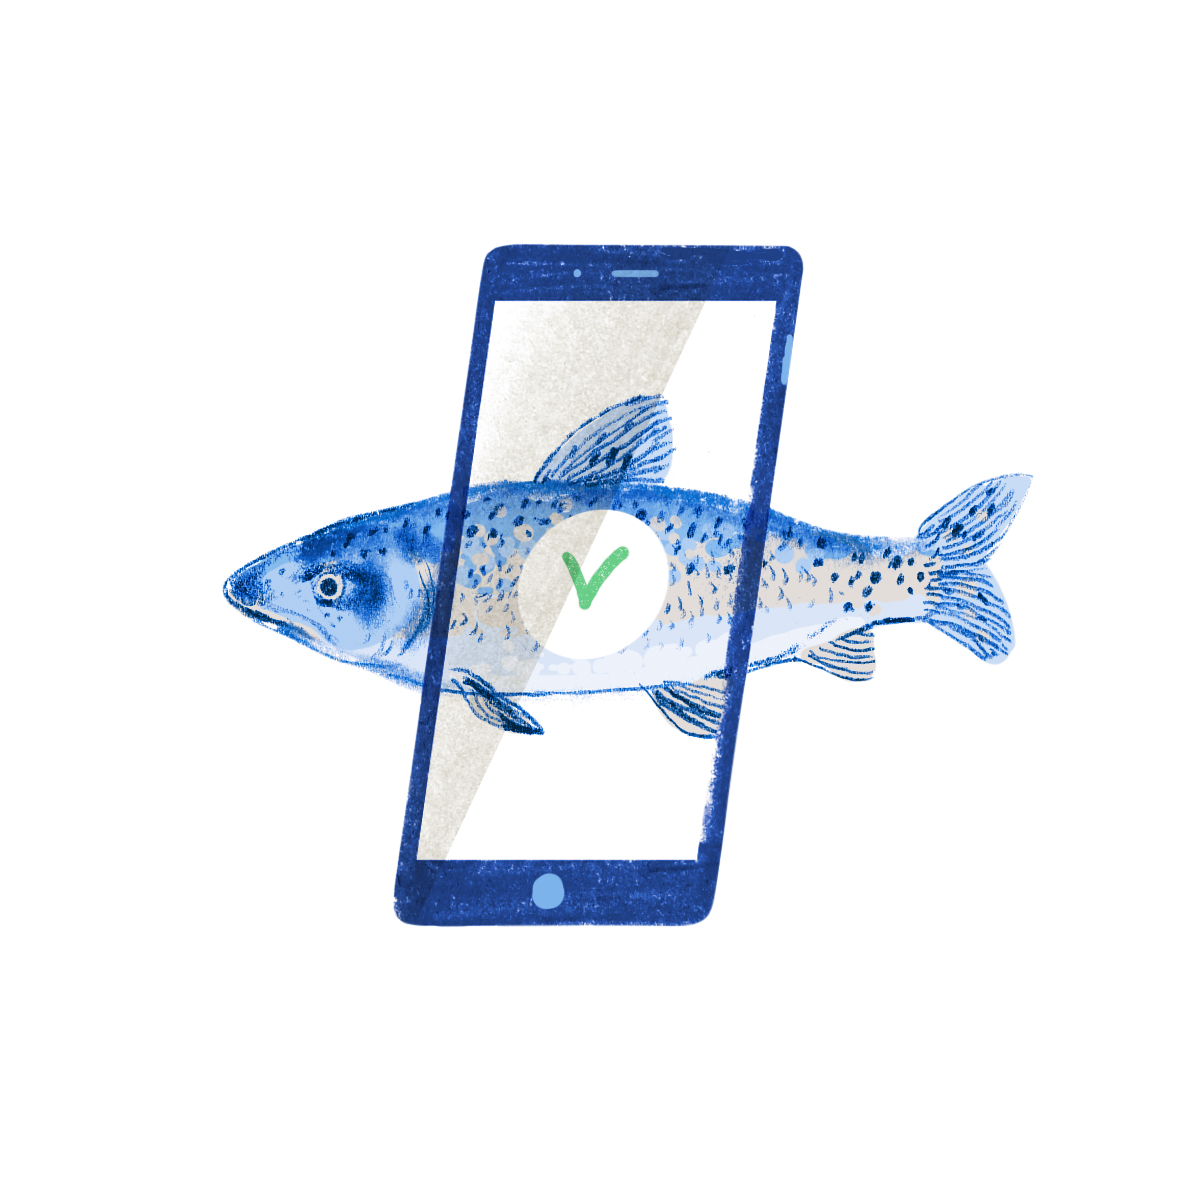 Illustration: fish approved by phone